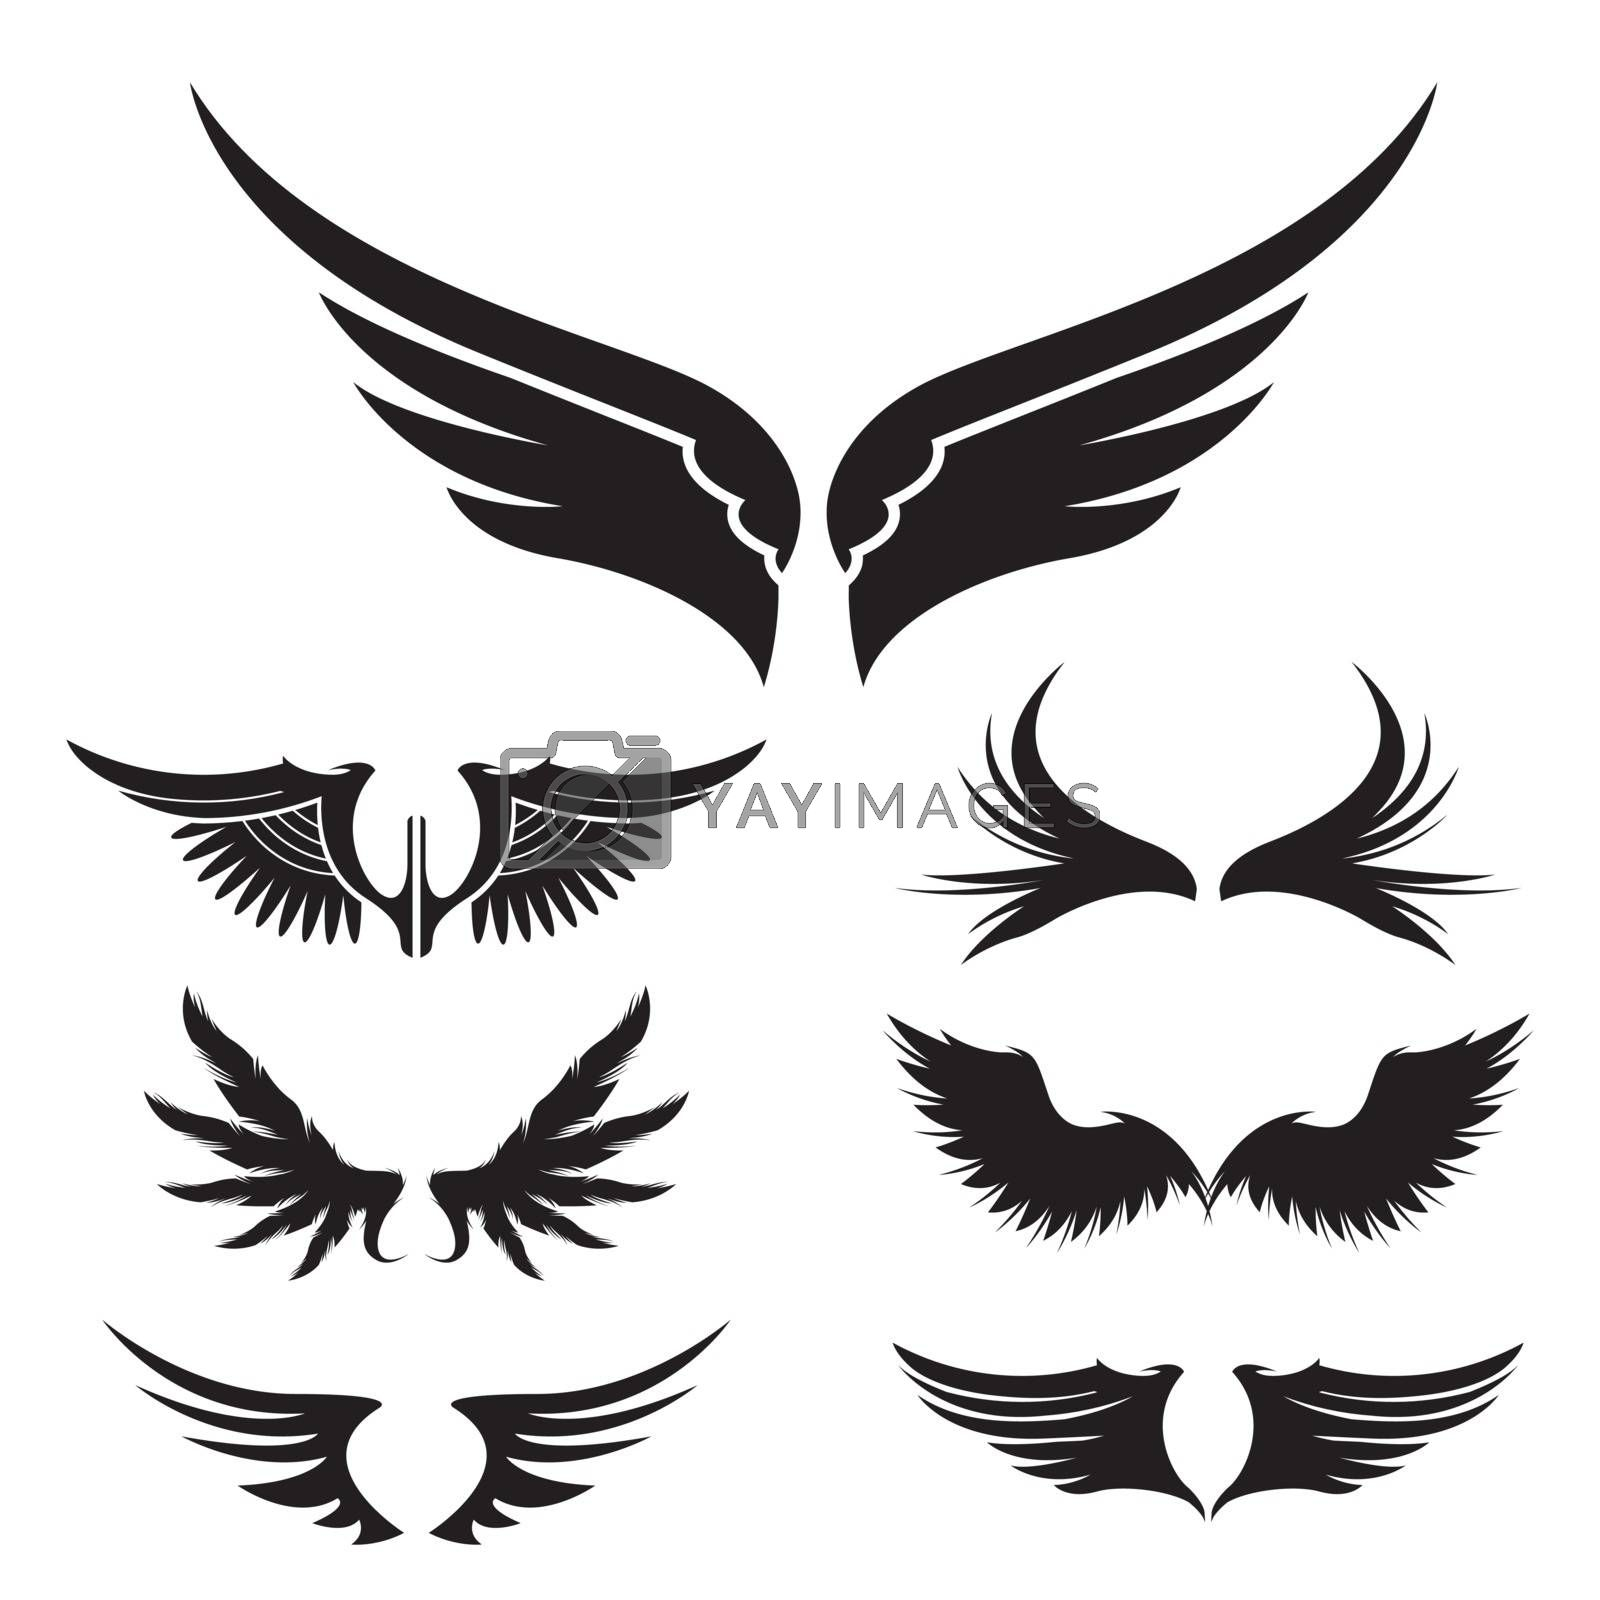 Royalty free image of Set of Wing Simple logo or sign icon element Vector illustration. by Ienjoyeverytime